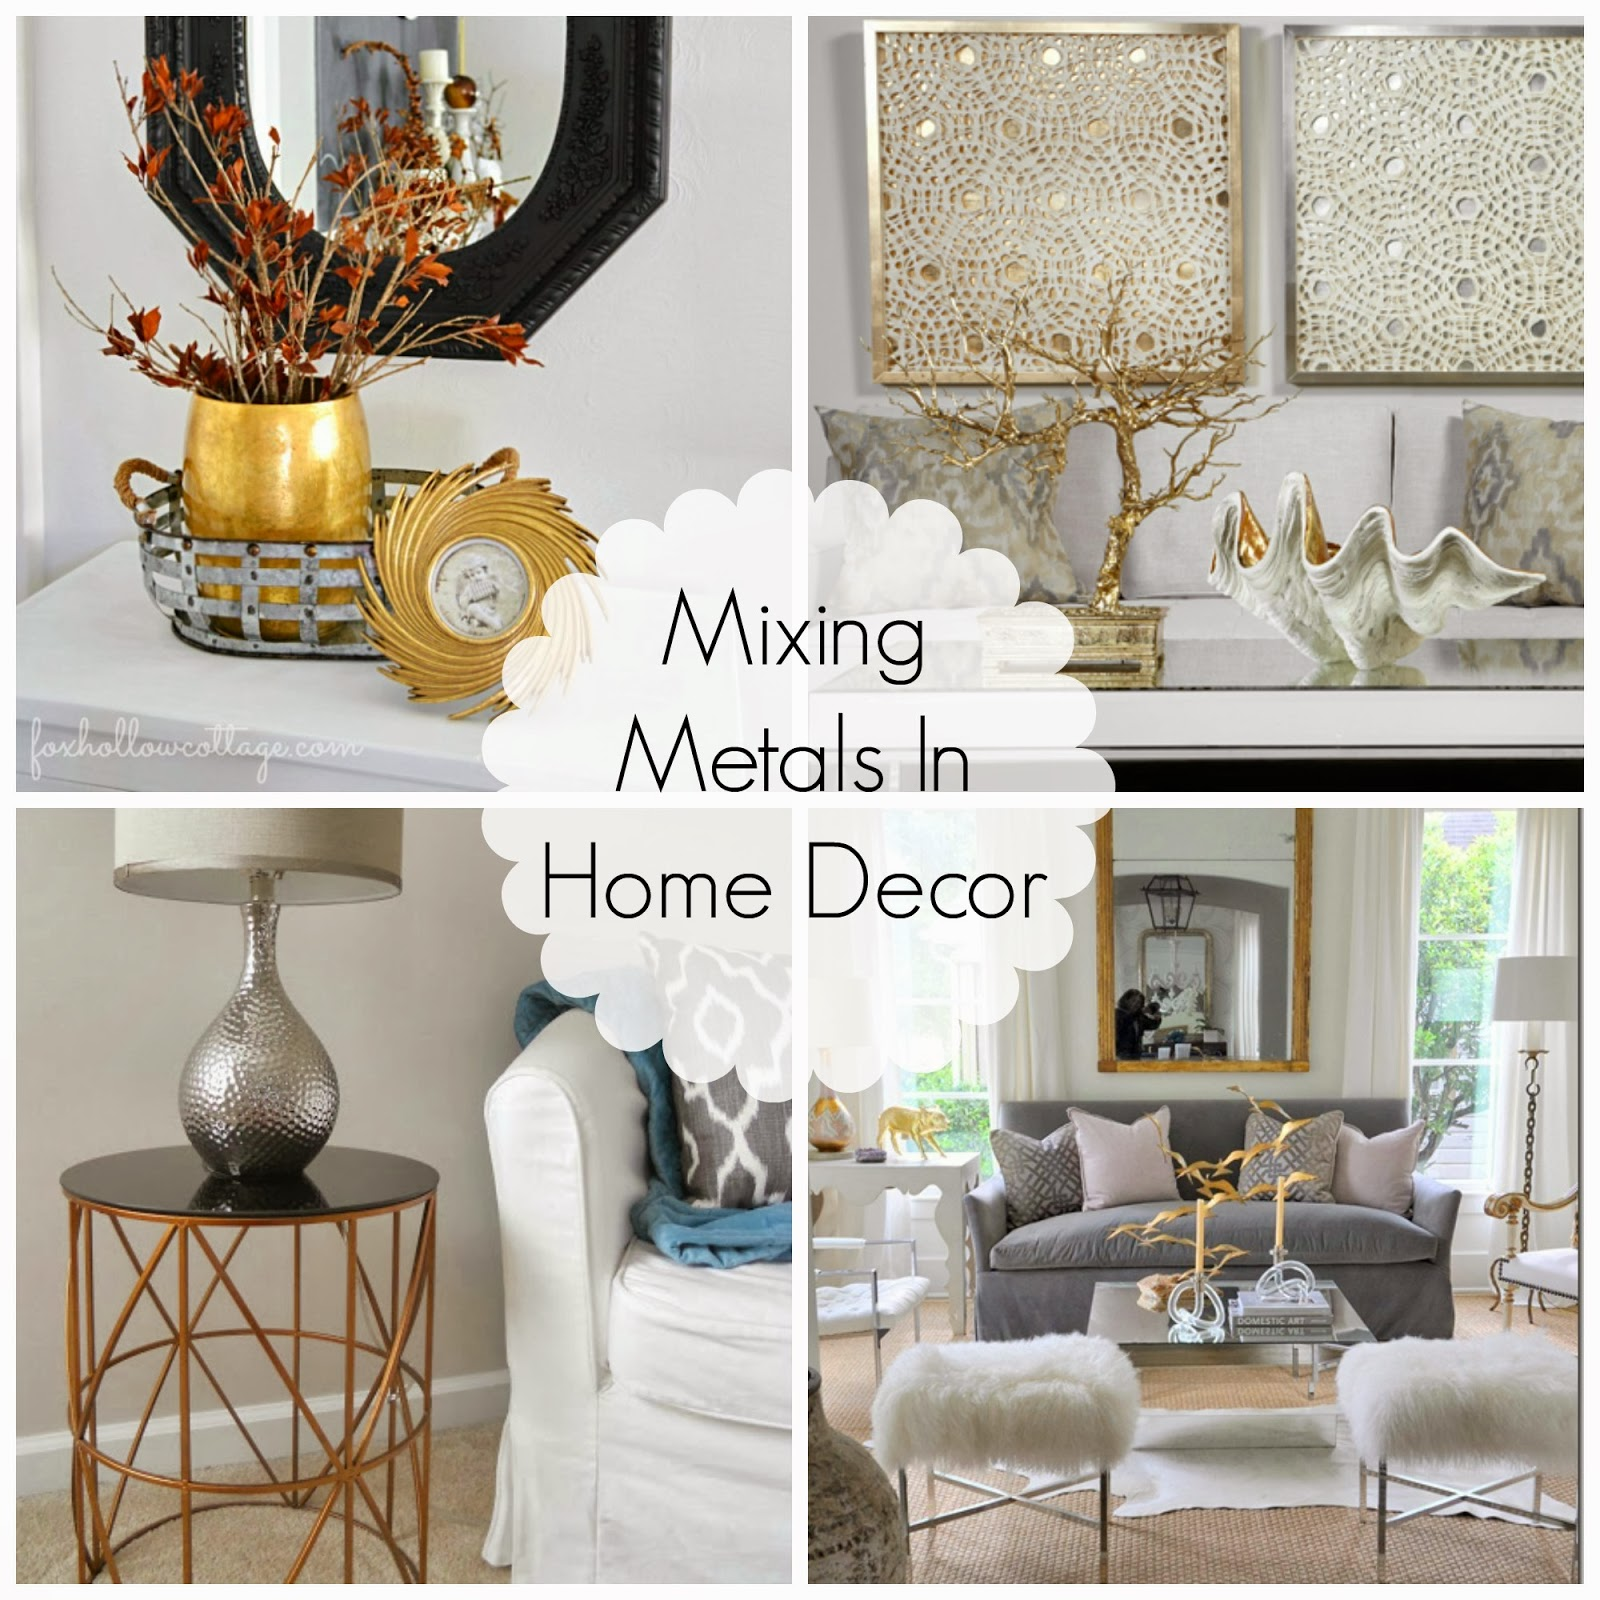 Decorating cents mixing metals in home decor for Home decor centerpieces